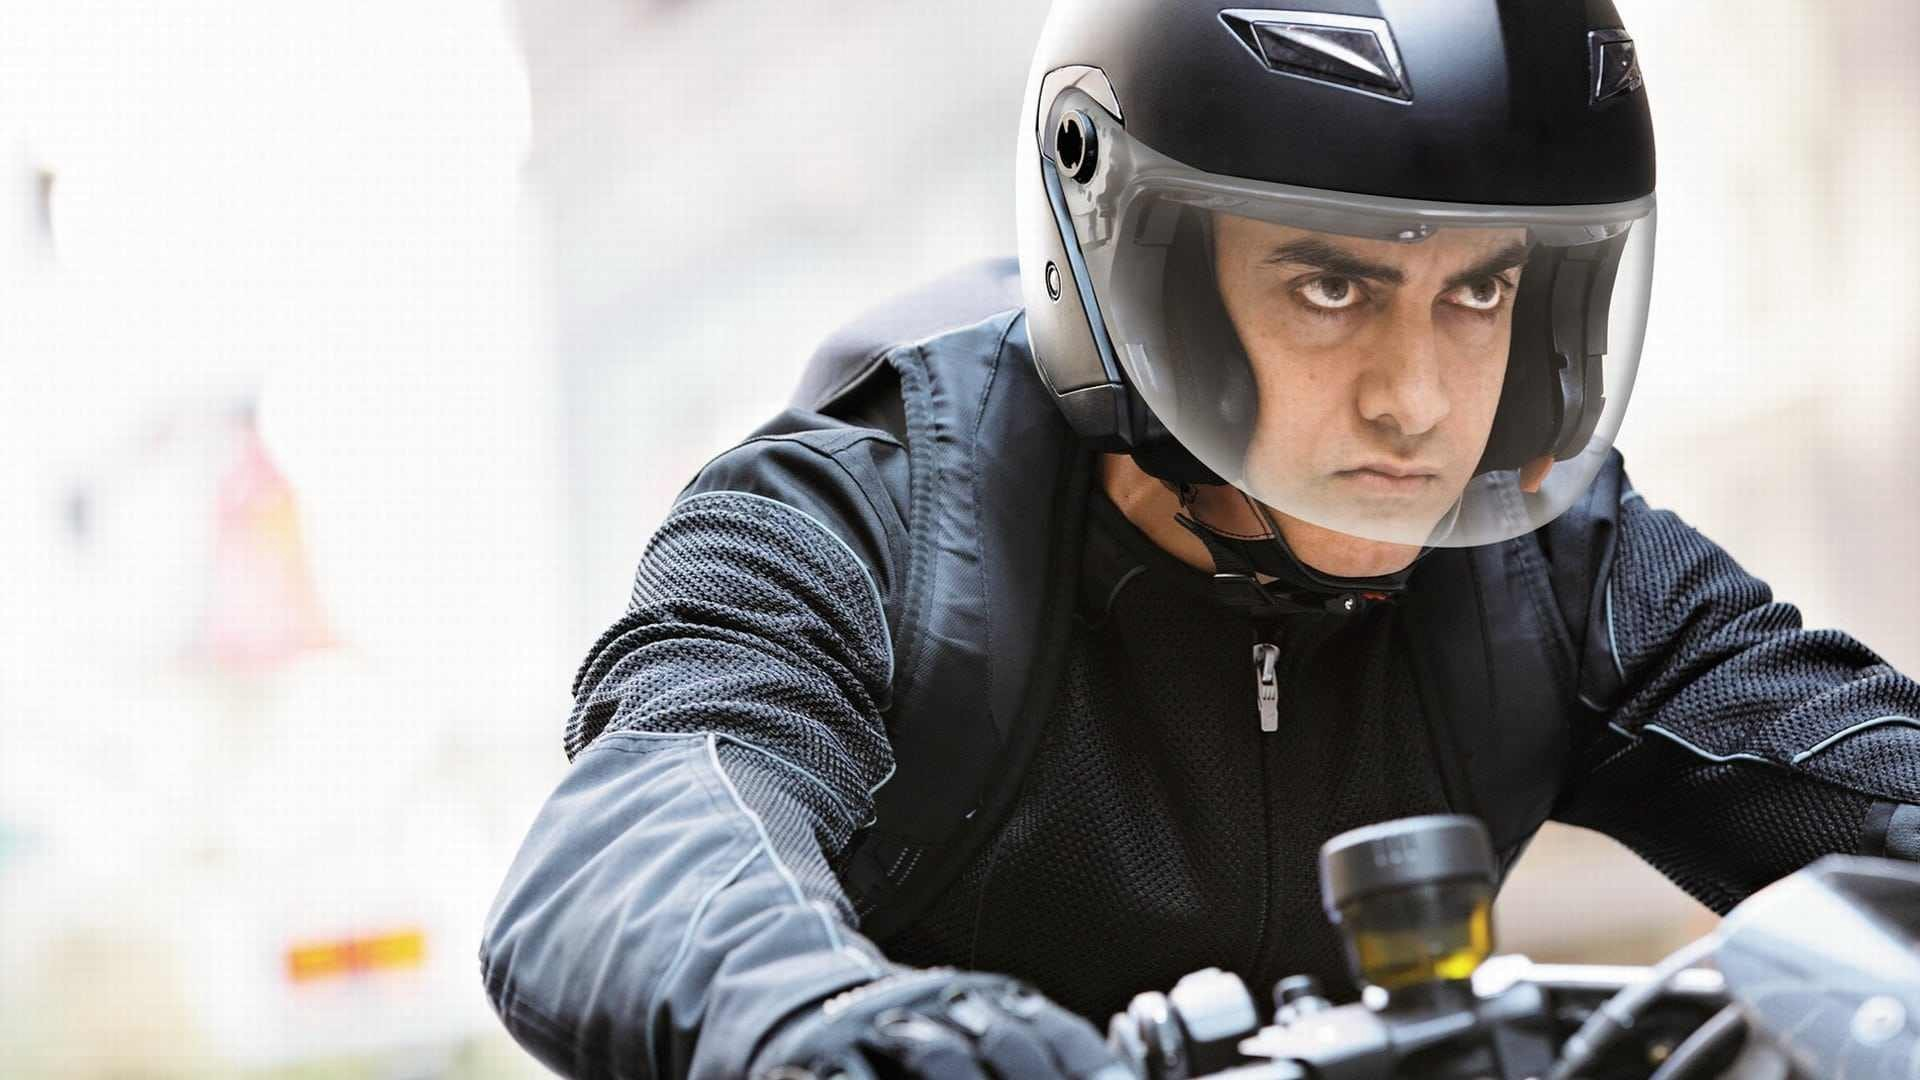 Voir Dhoom 3 Complet F I L M S 2013 Streaming Vf By Asadullah Bh Hd Voir Dhoom 3 2013 Feb 2021 Medium